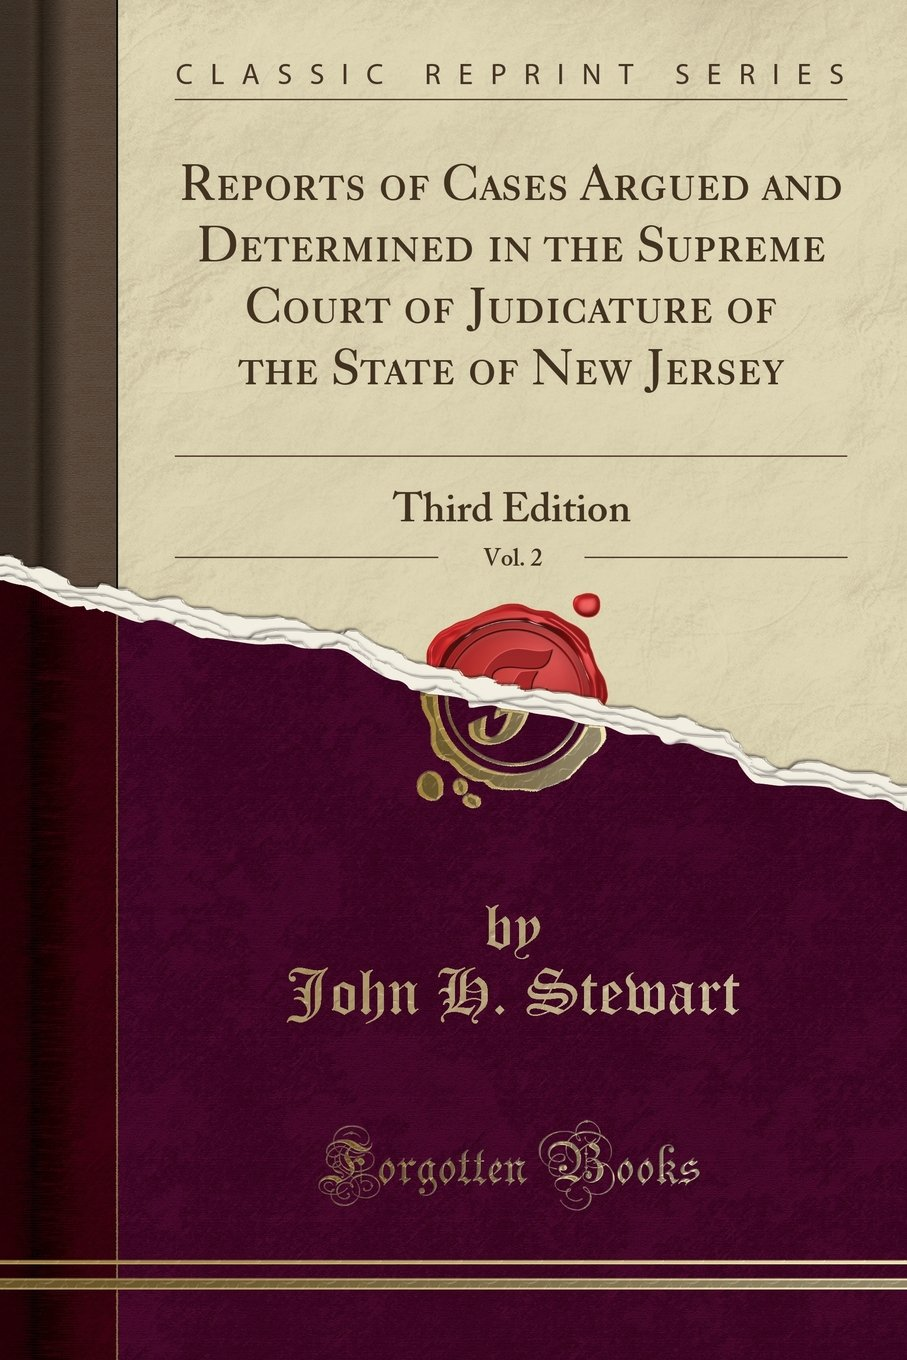 Read Online Reports of Cases Argued and Determined in the Supreme Court of Judicature of the State of New Jersey, Vol. 2: Third Edition (Classic Reprint) ebook